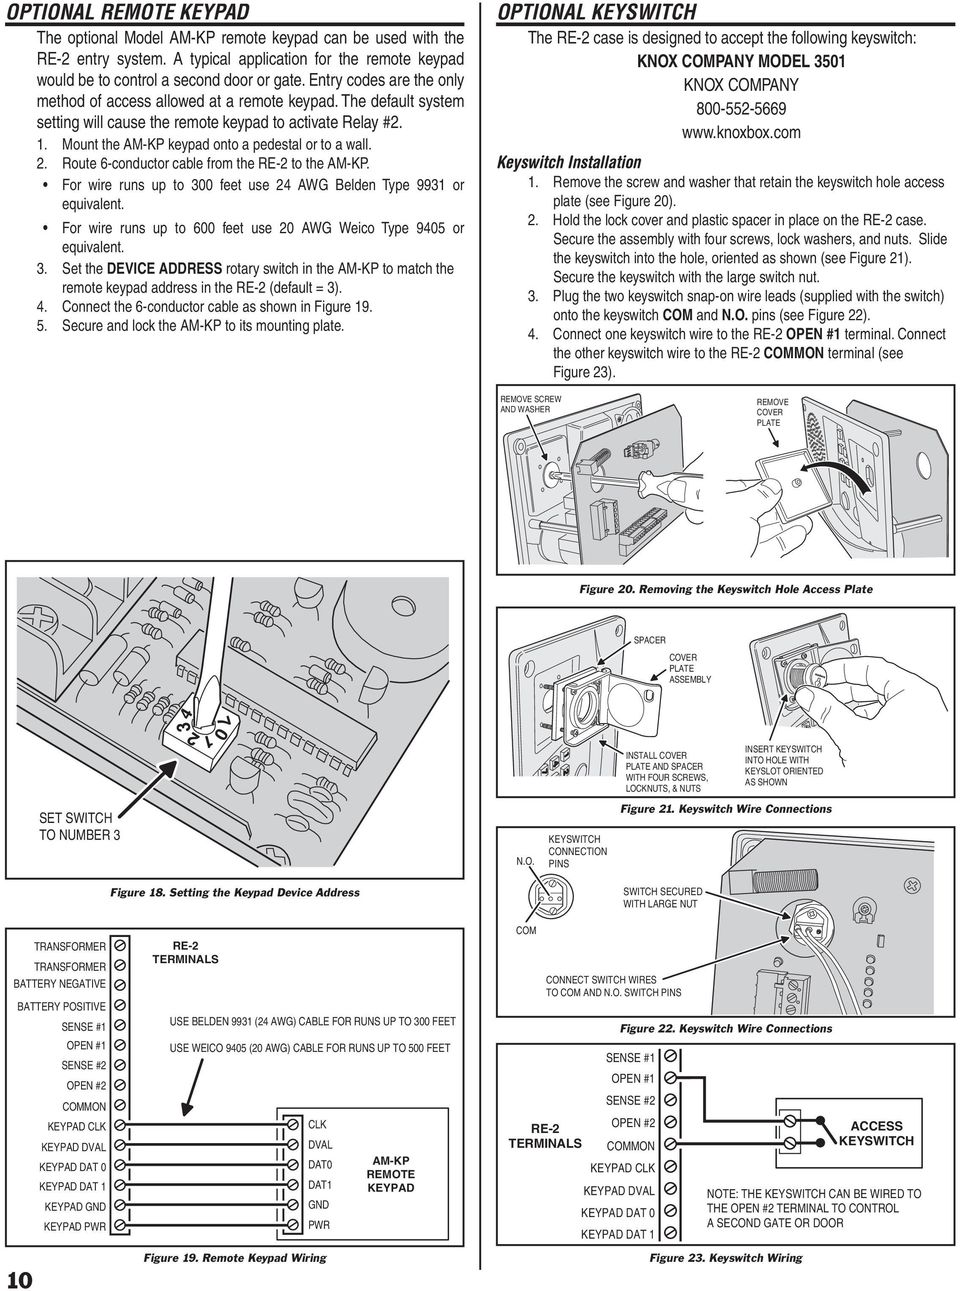 Basic Wiring Diagram Ln 6 With Kp 100 Keypad Electrical For Re 2 Residential Telephone Entry System Installation Programming